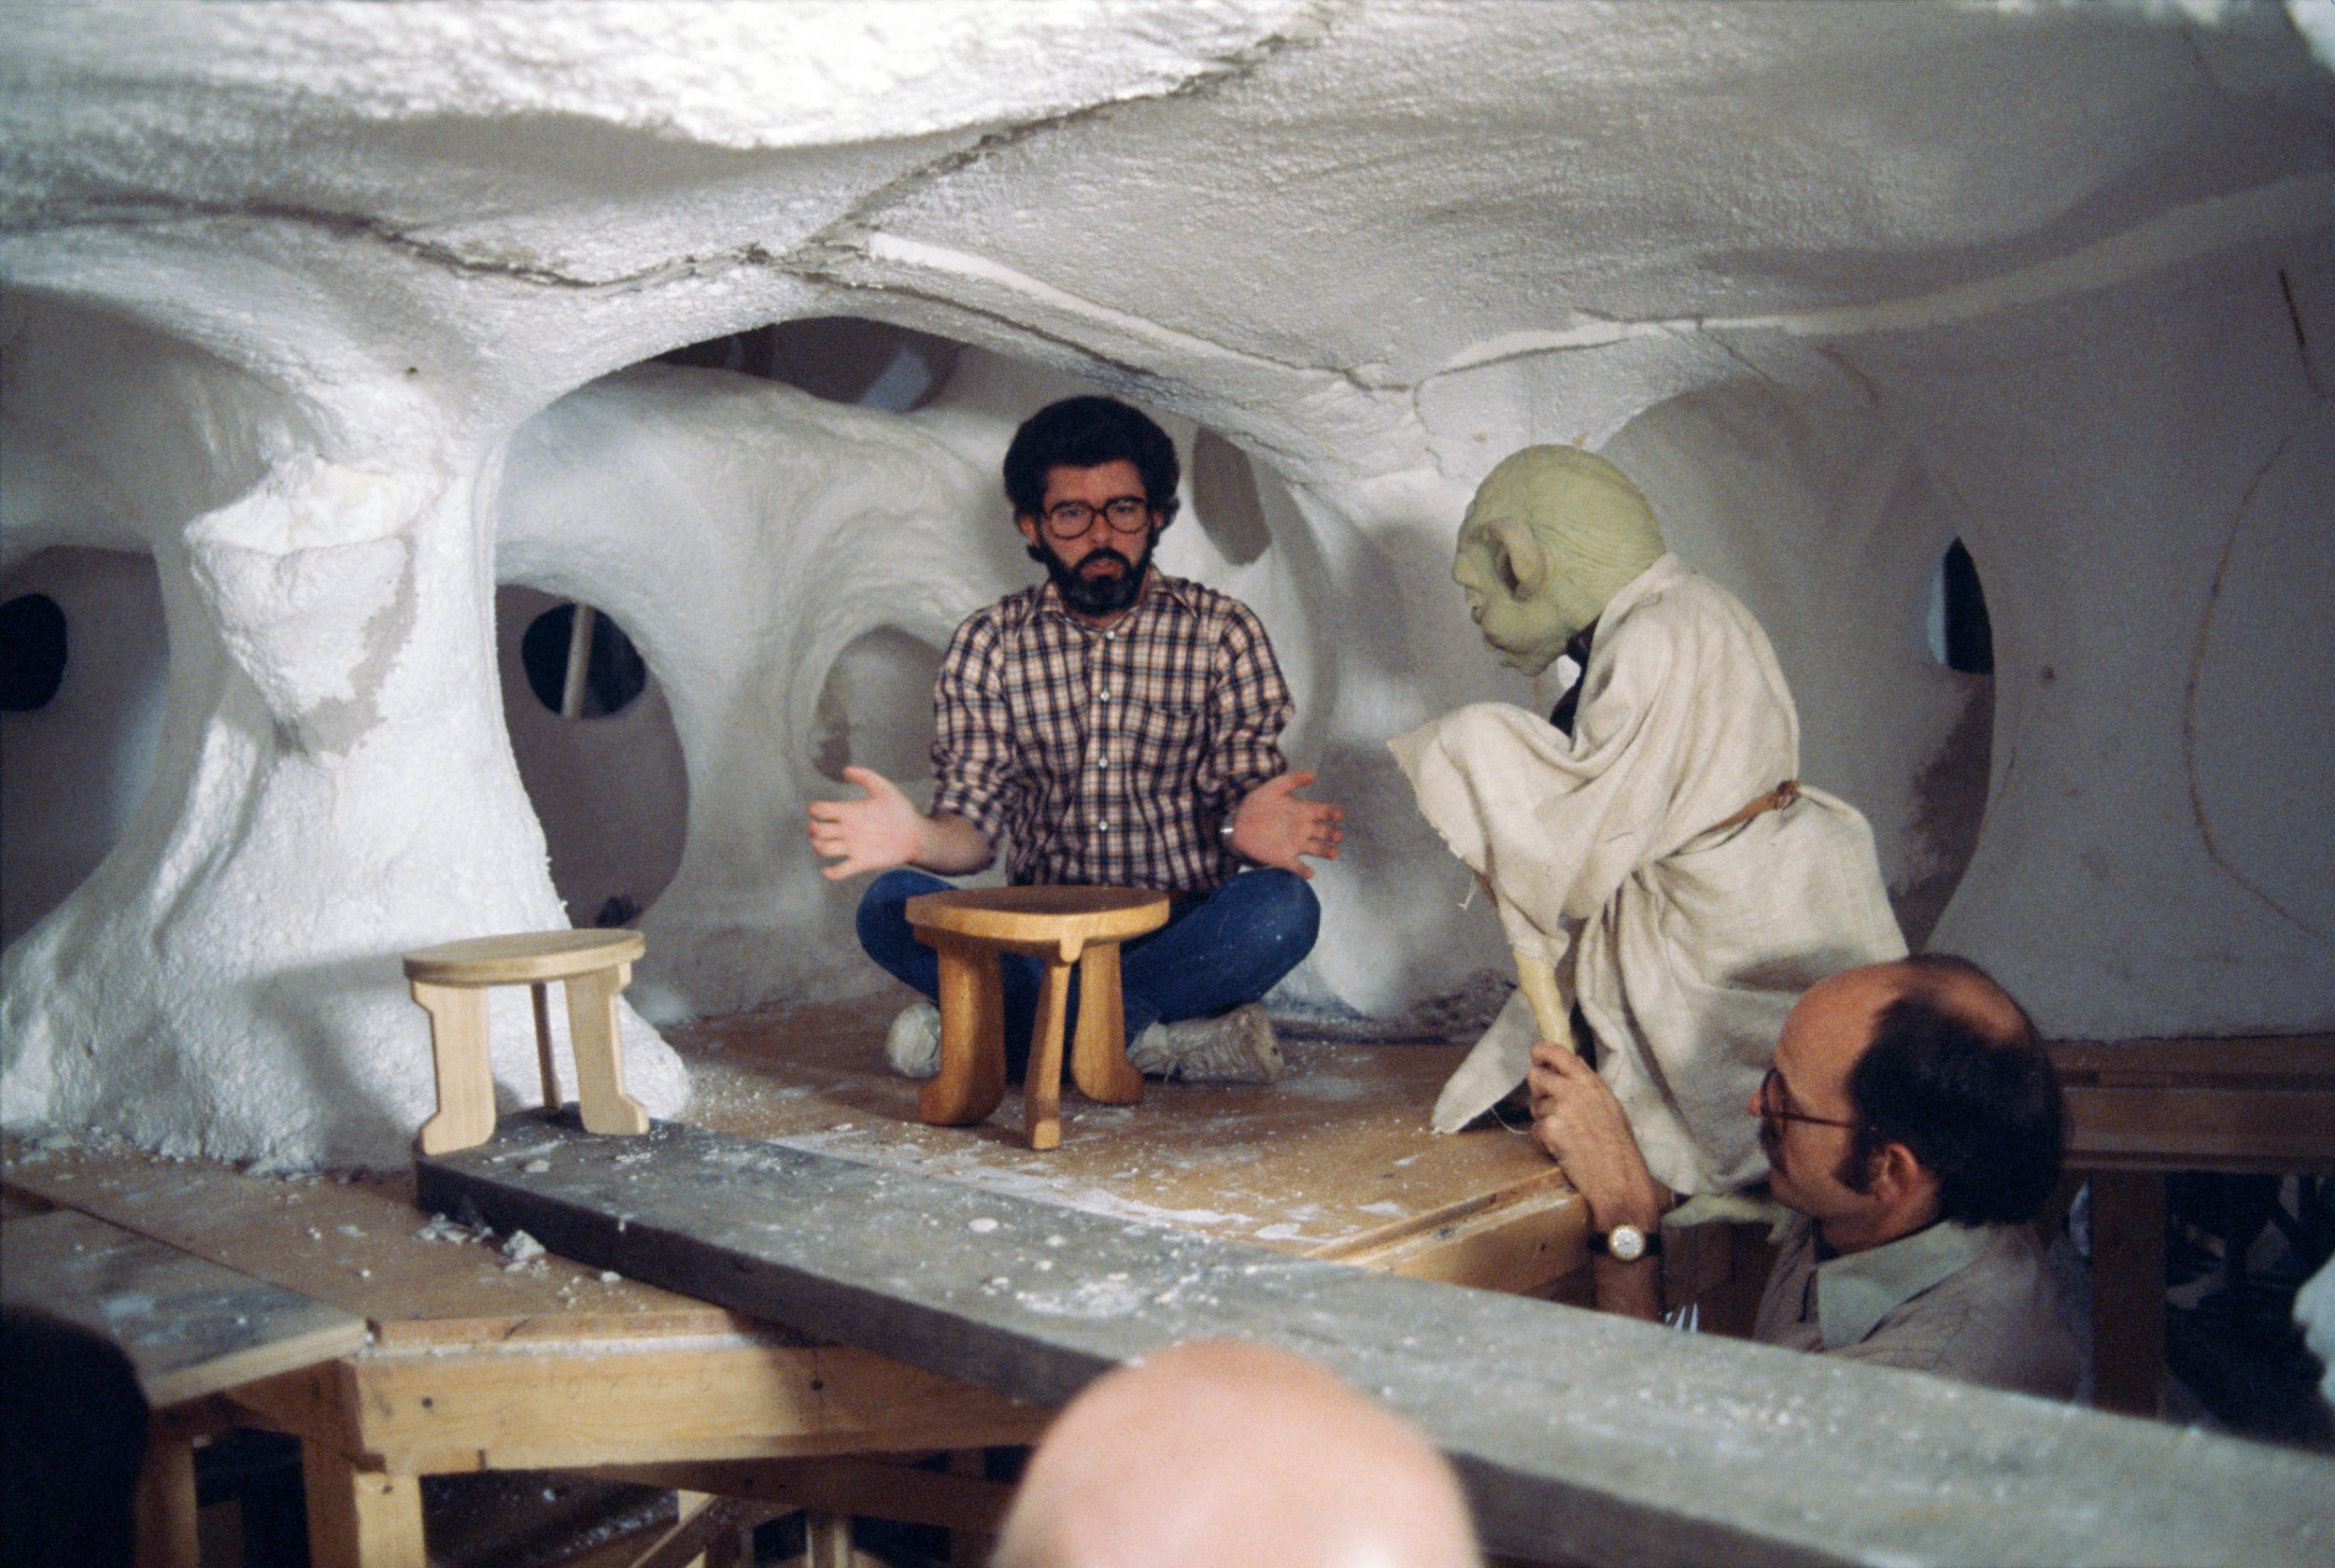 Rare Star Wars set pictures show George Lucas conversing with Yoda and The Battle of Hoth on tabletops